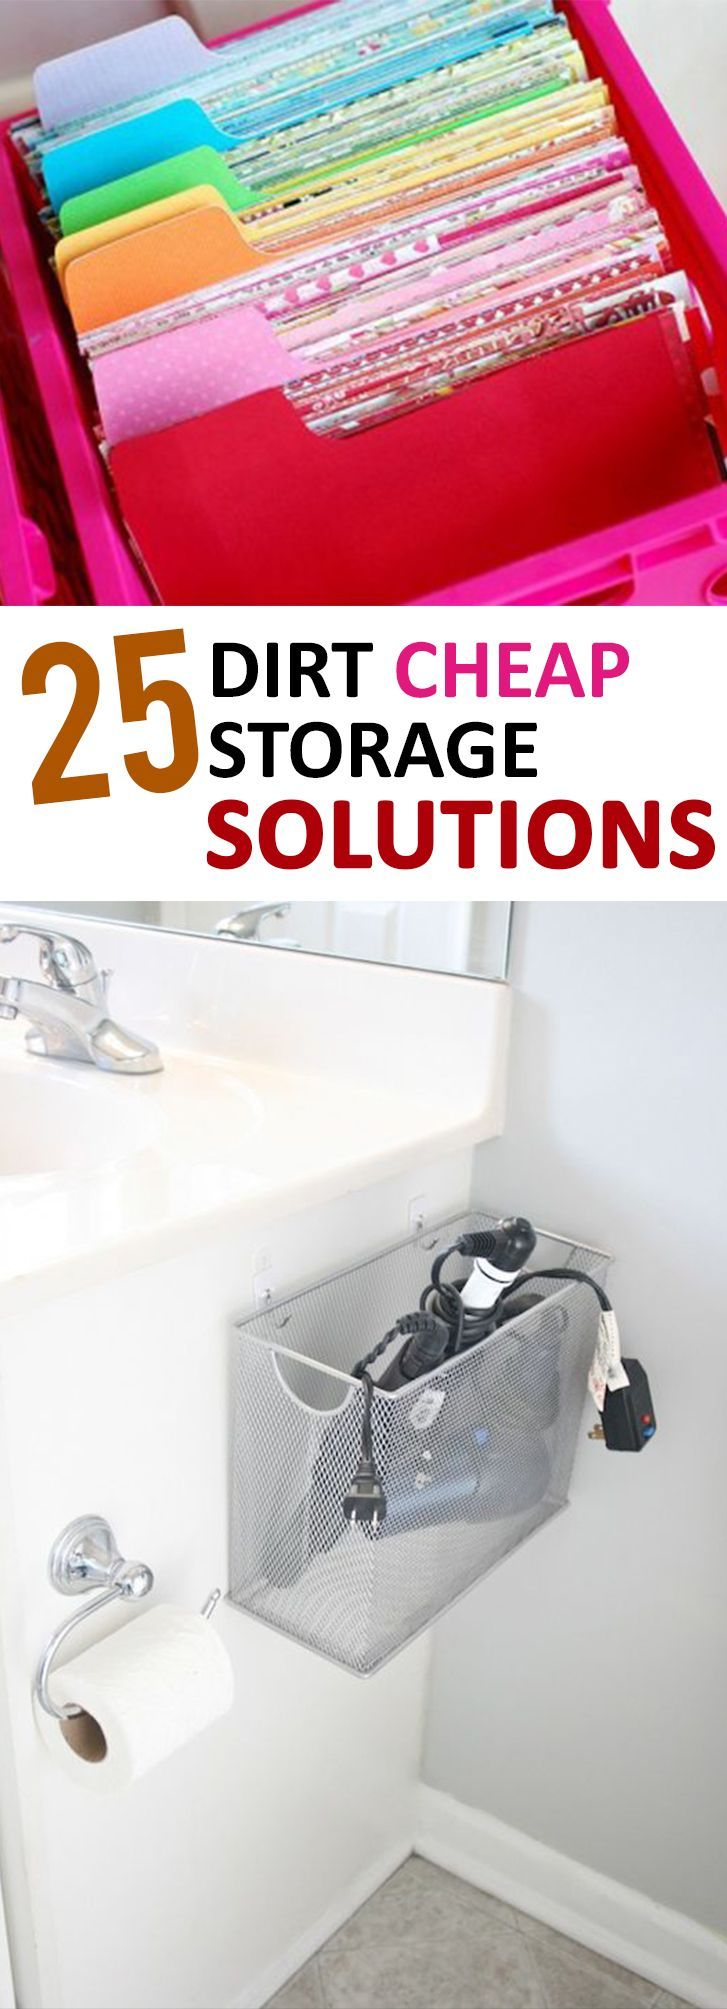 25 Dirt Cheap Storage Solutions Cheap storage, Diy